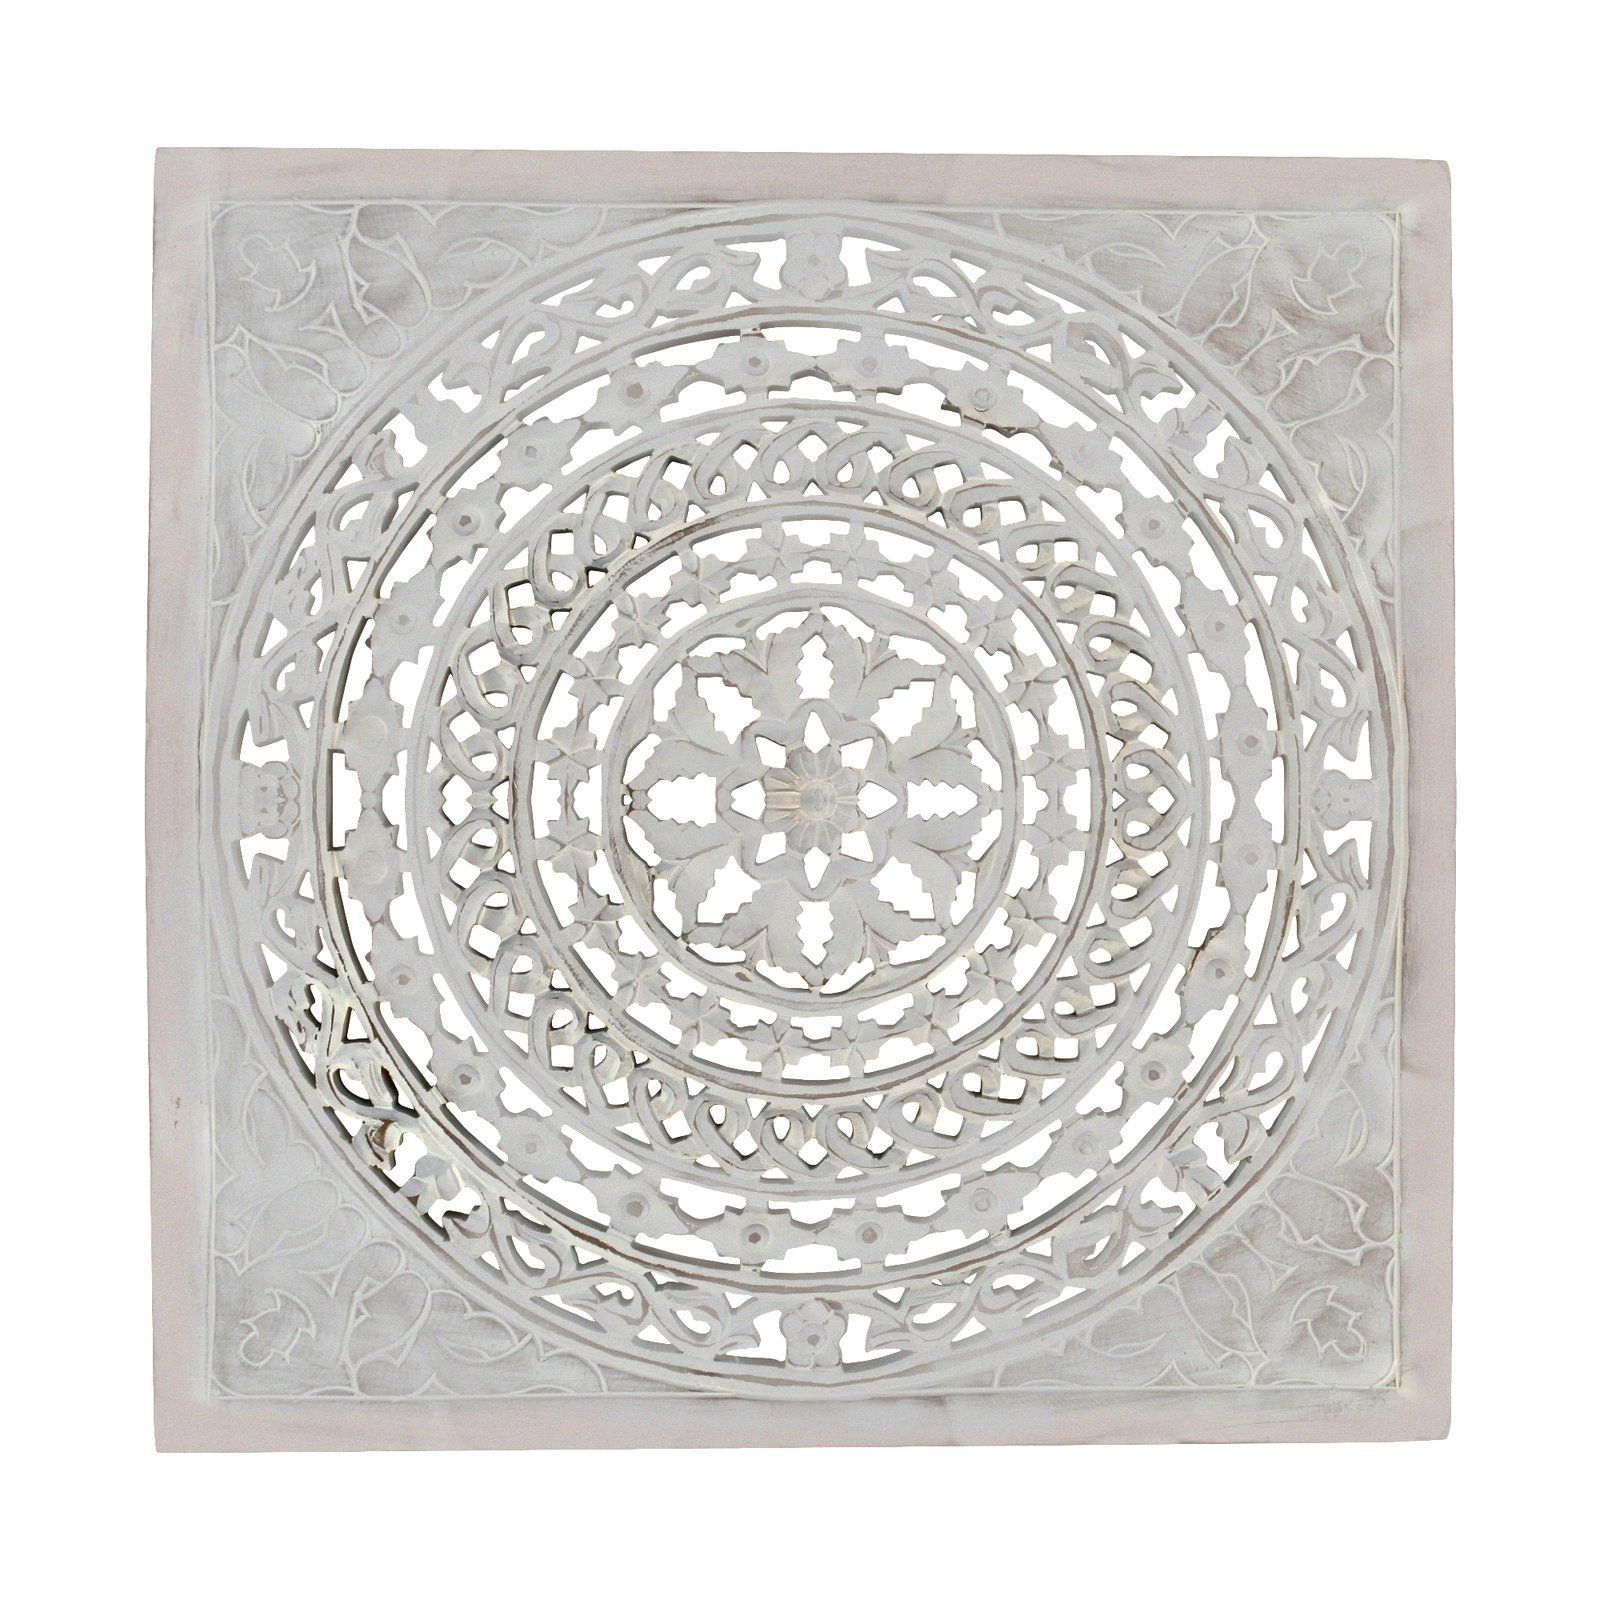 All Carved Square Wall Decor Square Wall Art Wall Decor Stickers Medallion Wall Decor